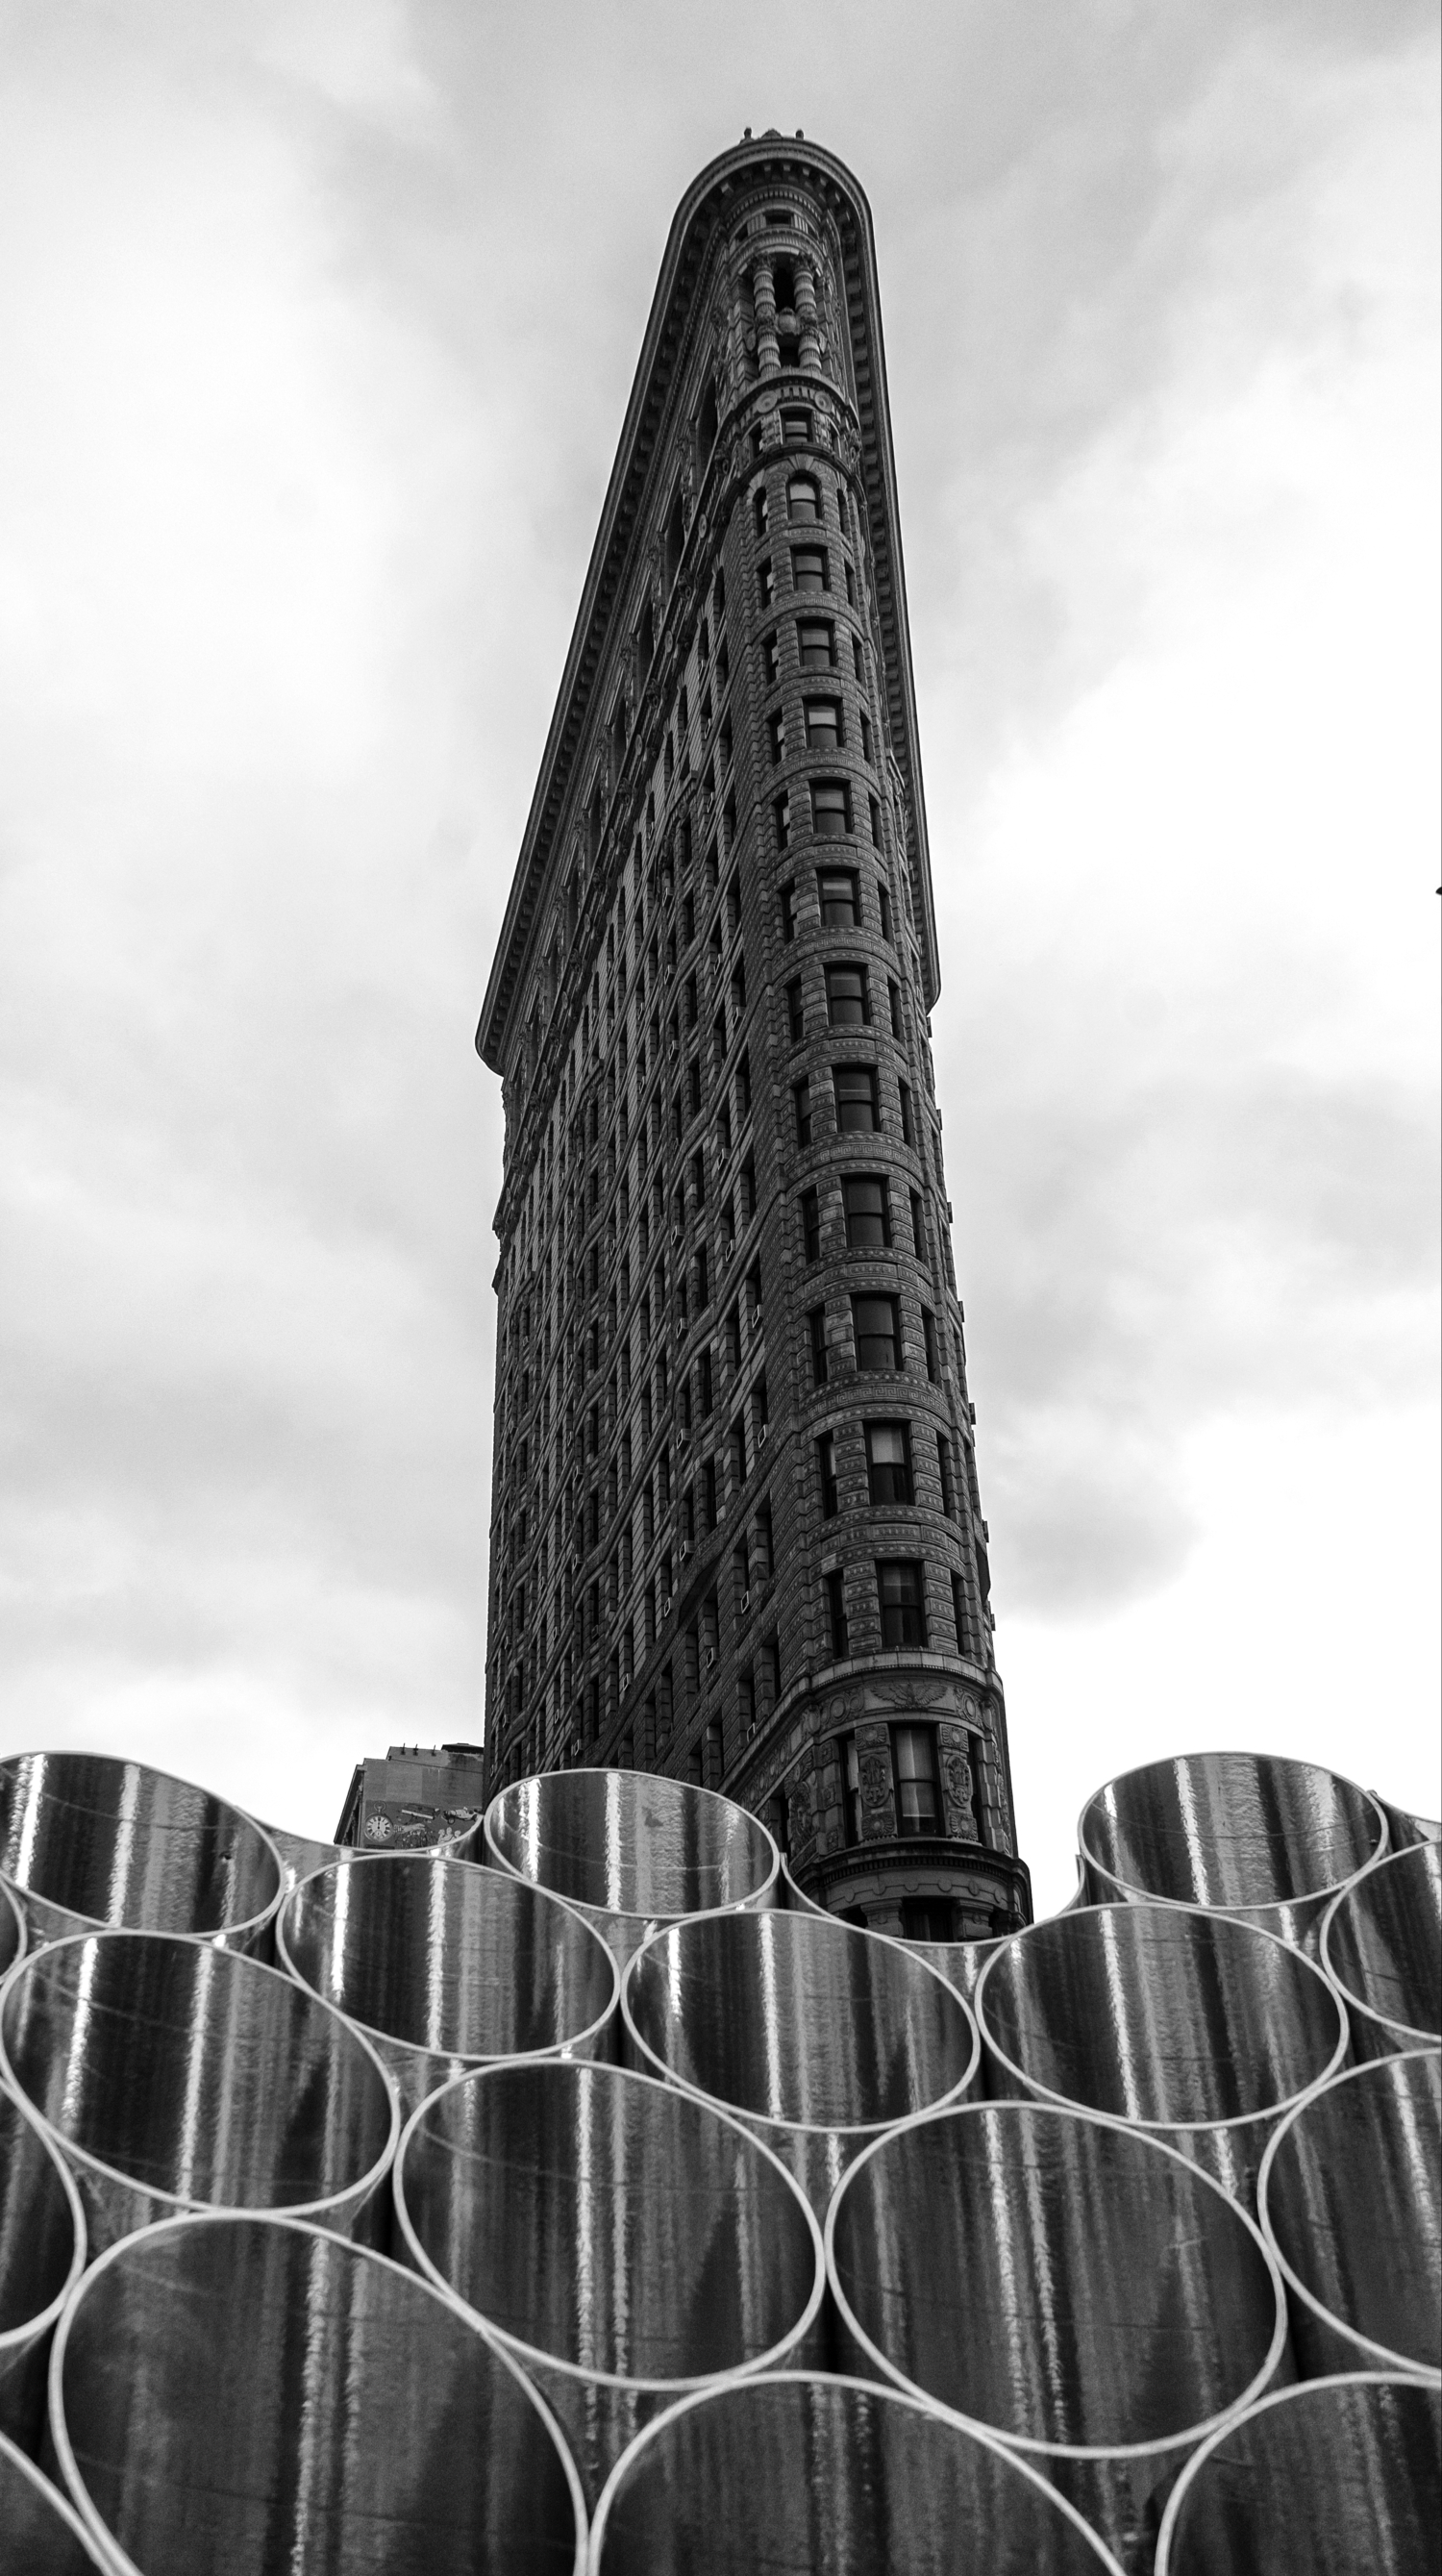 Flatiron Reflection - Future Expansion